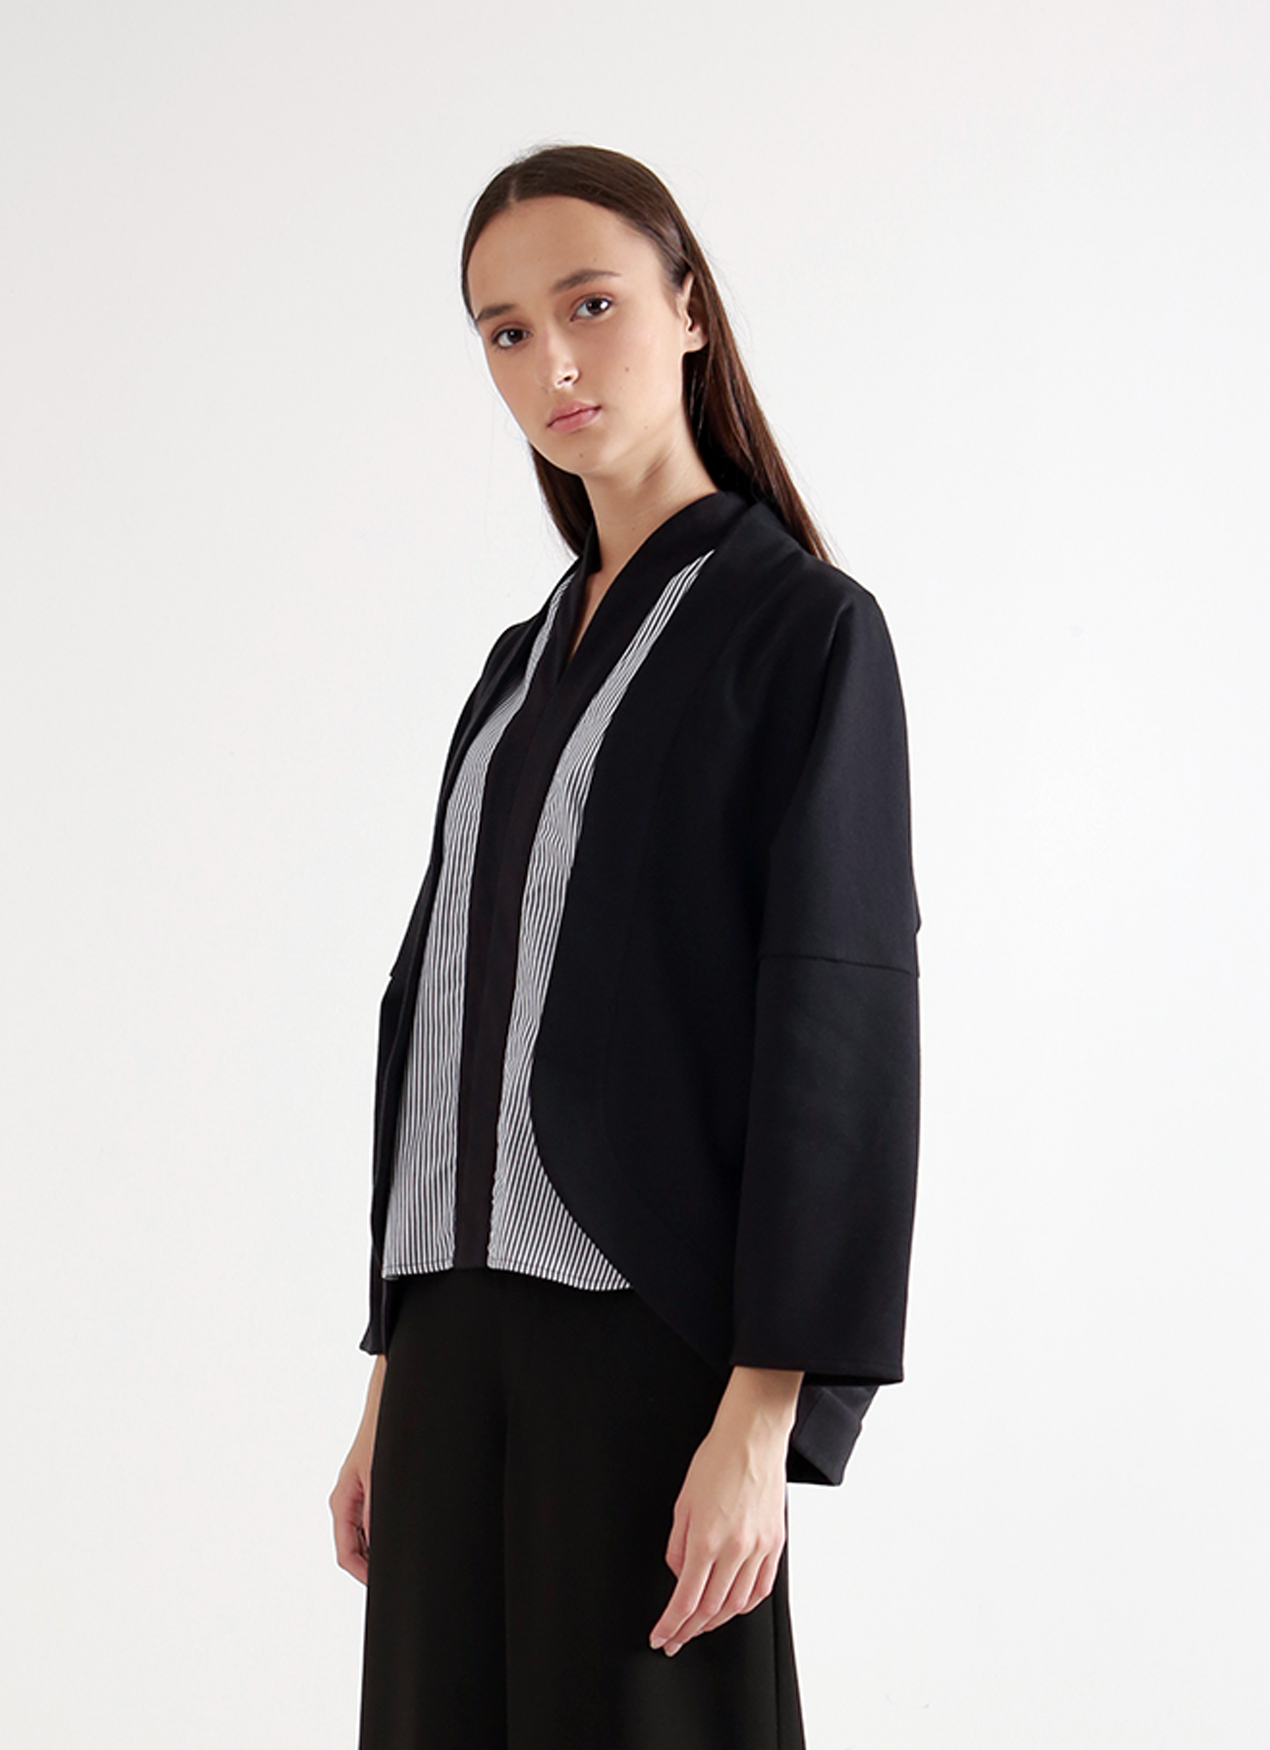 Wastu Kite Cardigan - Black